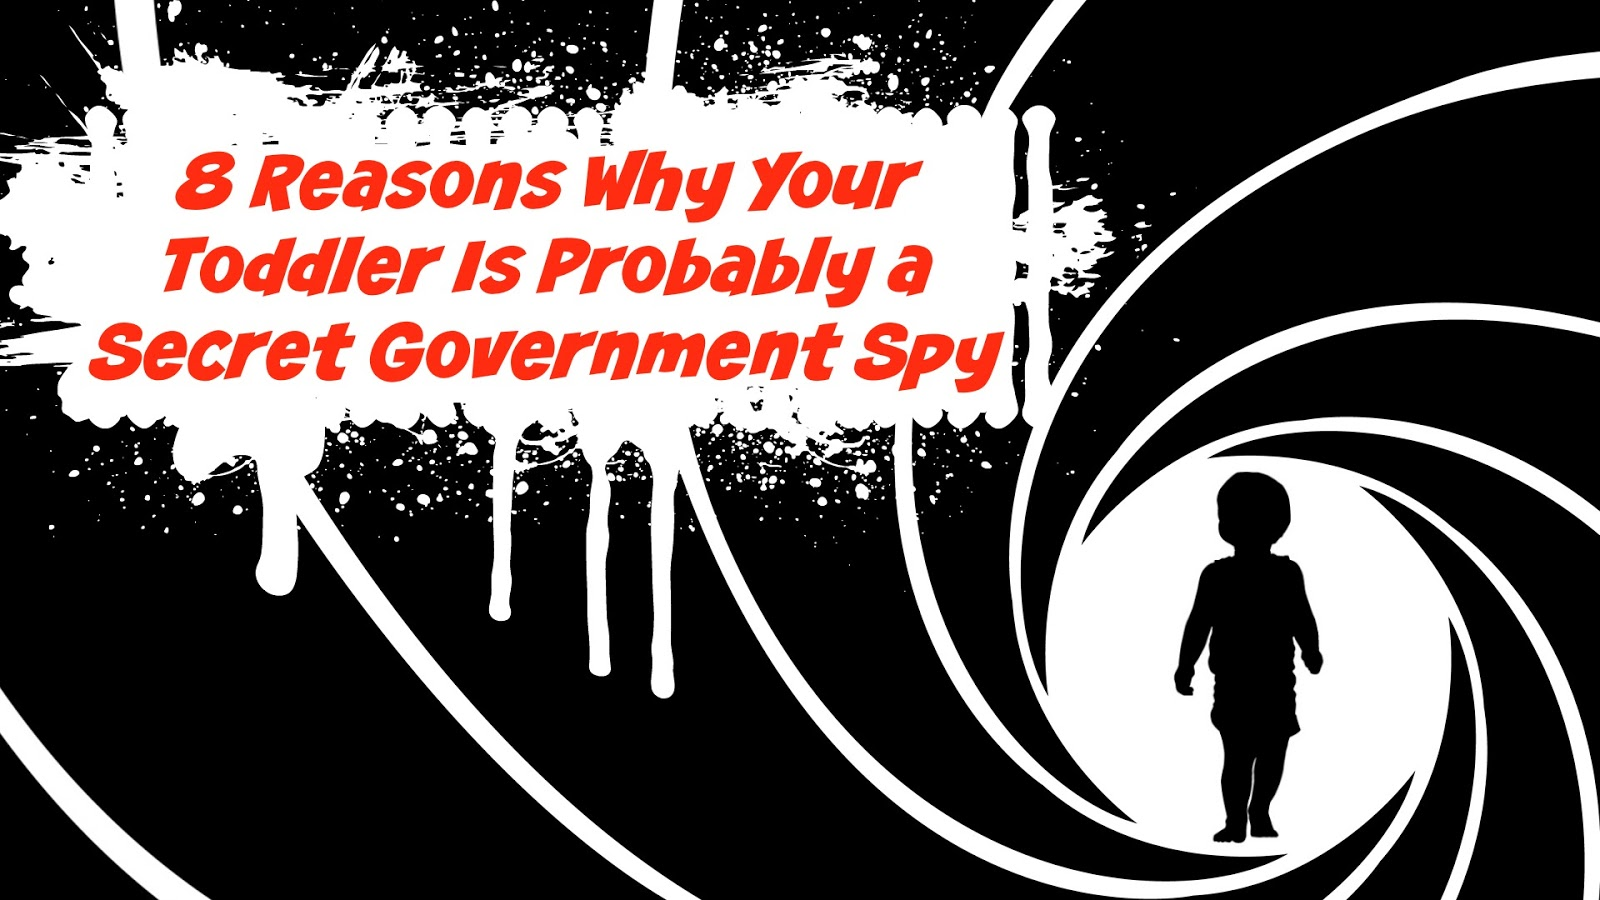 8 Reasons Why Your Toddler is Probably a Secret Government Spy